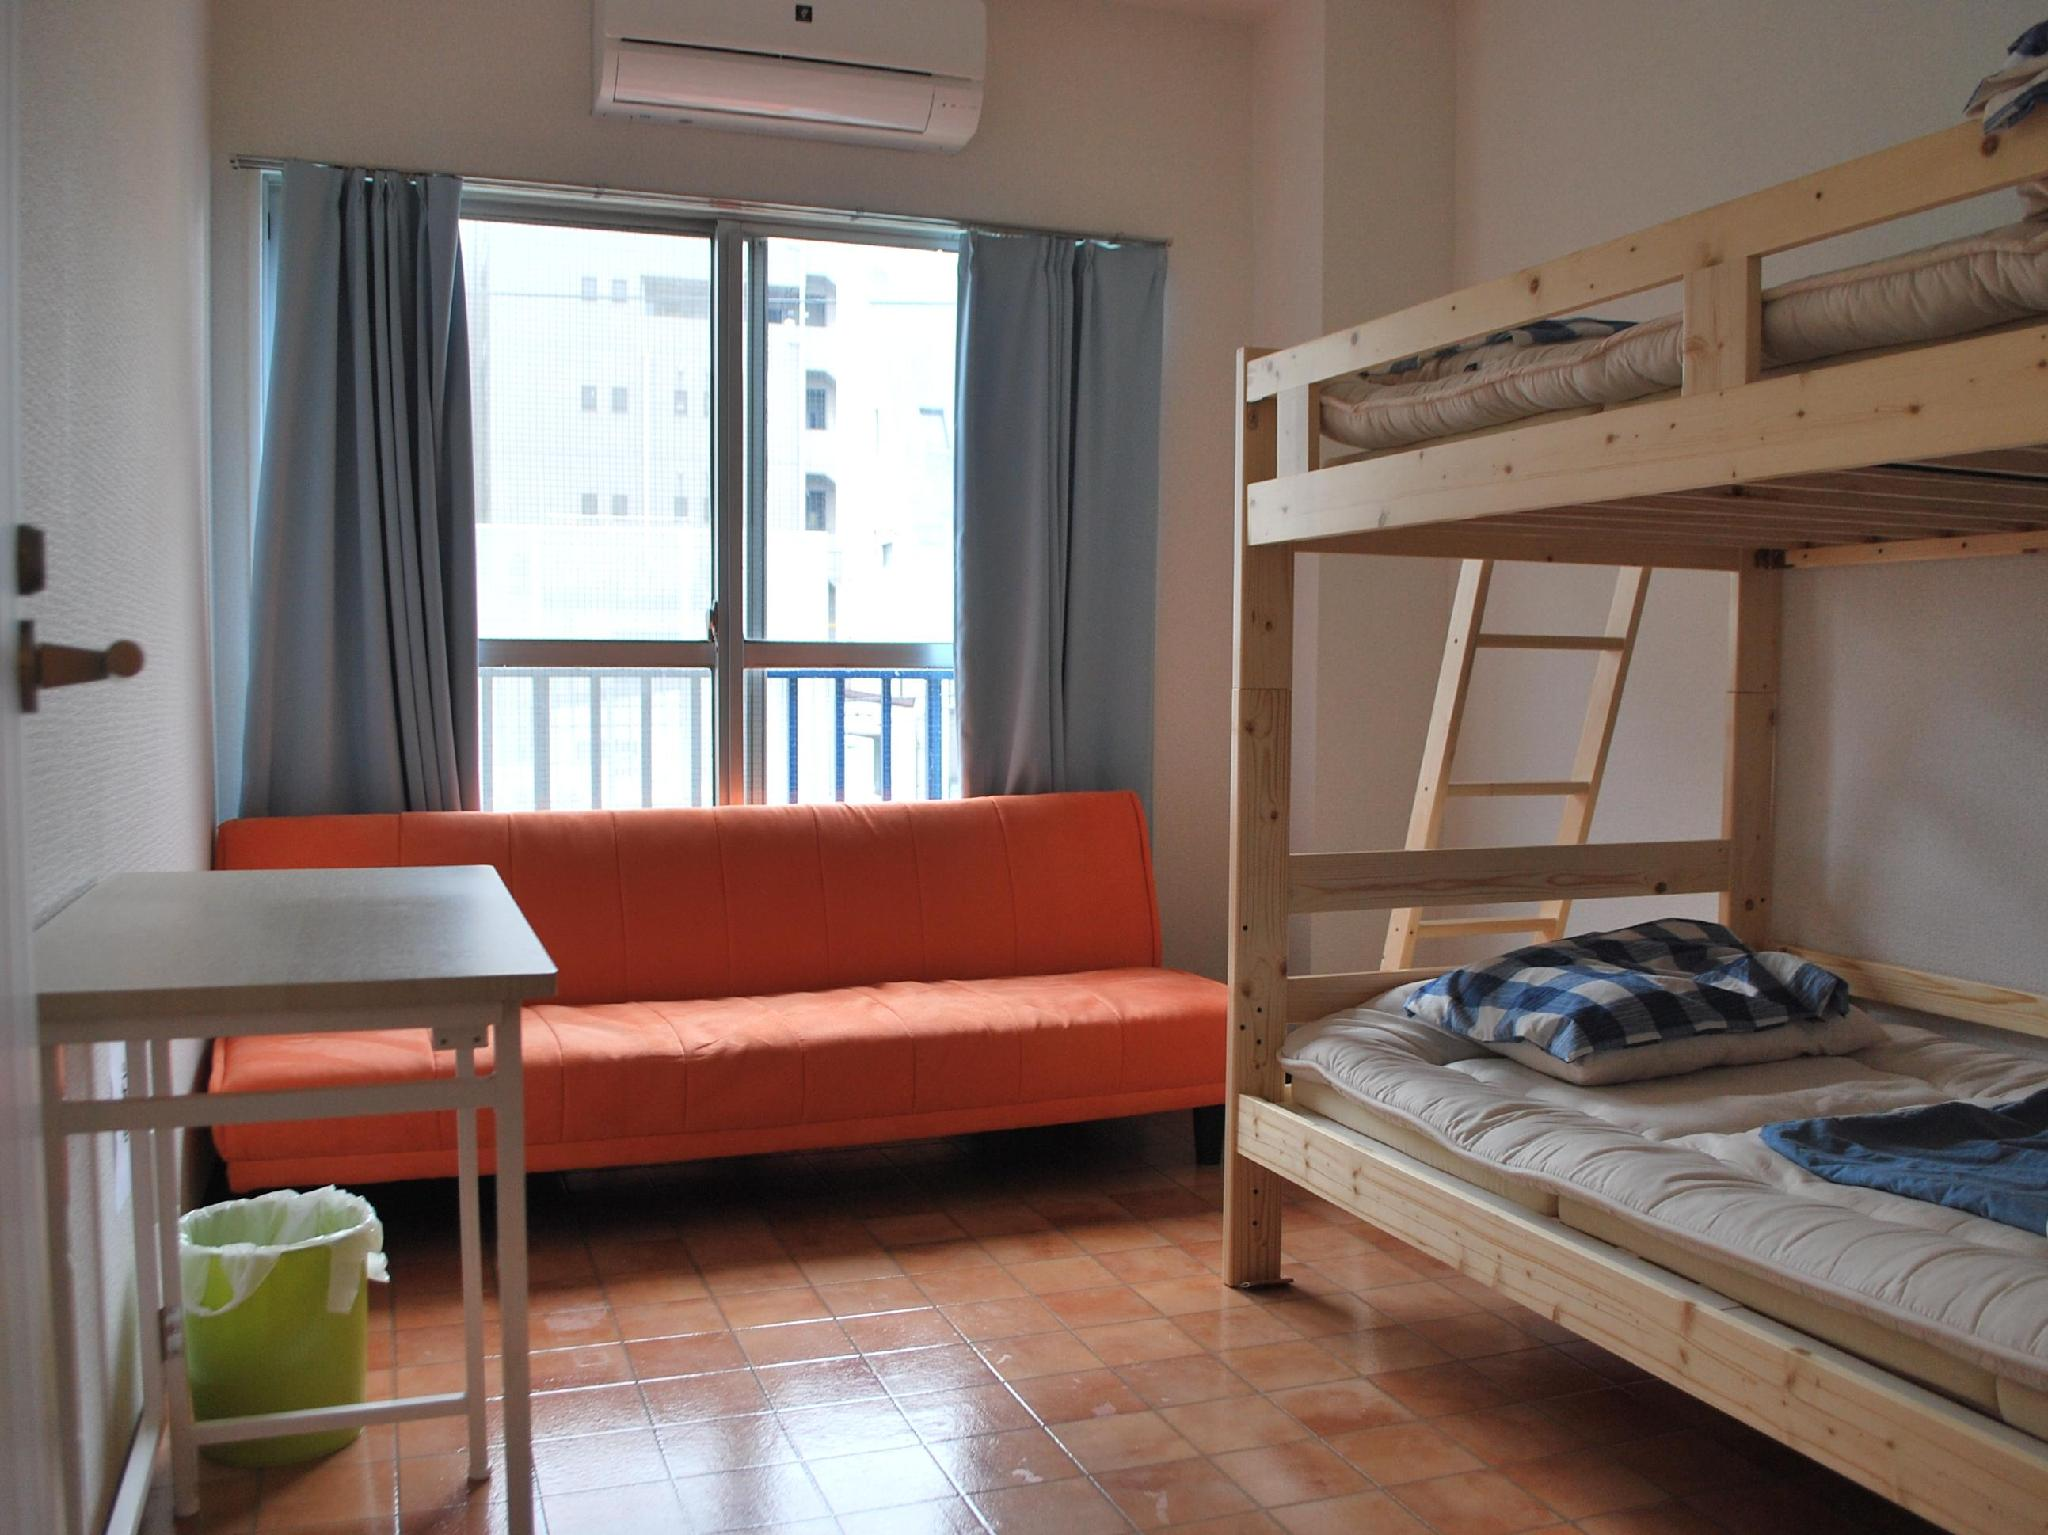 雙人房(梳化床) (Double Room with Sofa Bed)